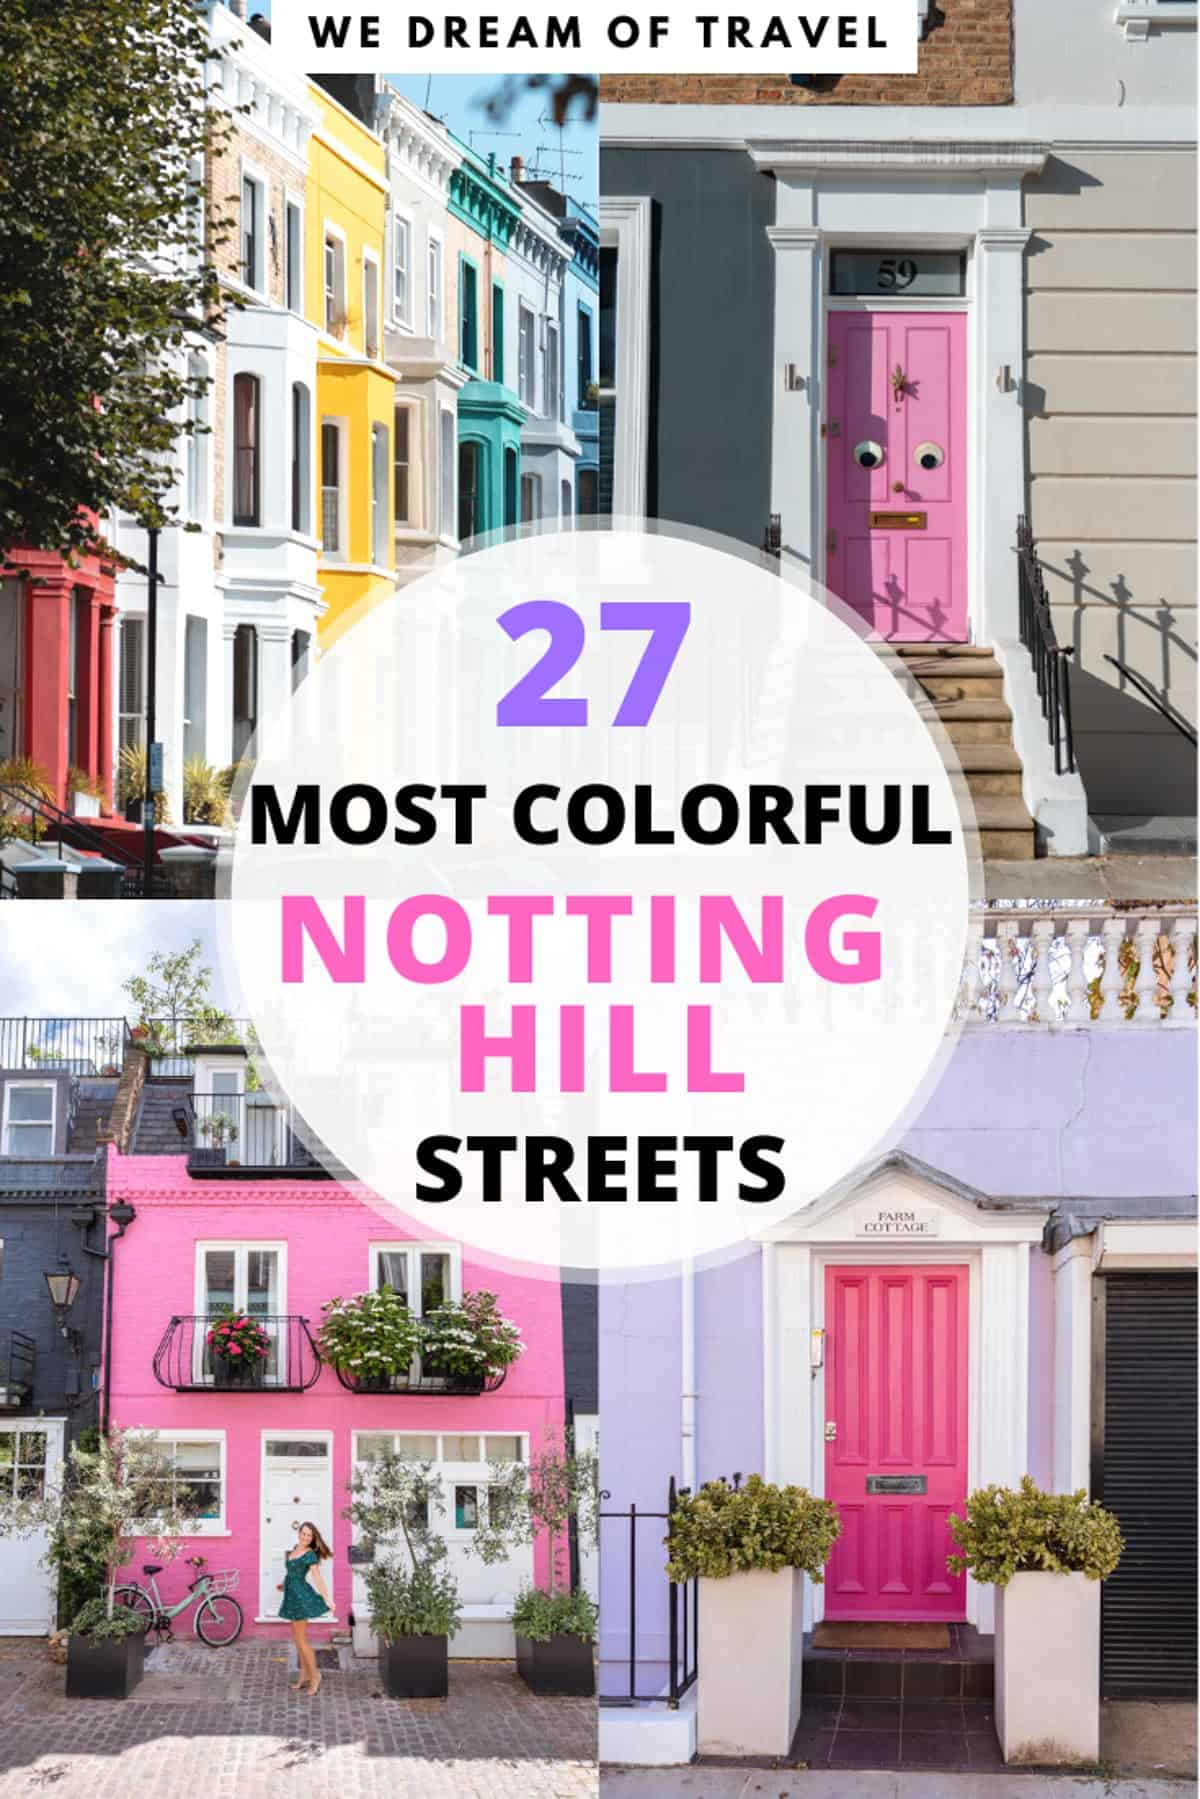 An Instagram guide to the most beautiful colorful houses in Notting Hill, London. This travel guide will help you plan your visit to Notting Hill. #photographyguide #nottinghill #london #travelguide